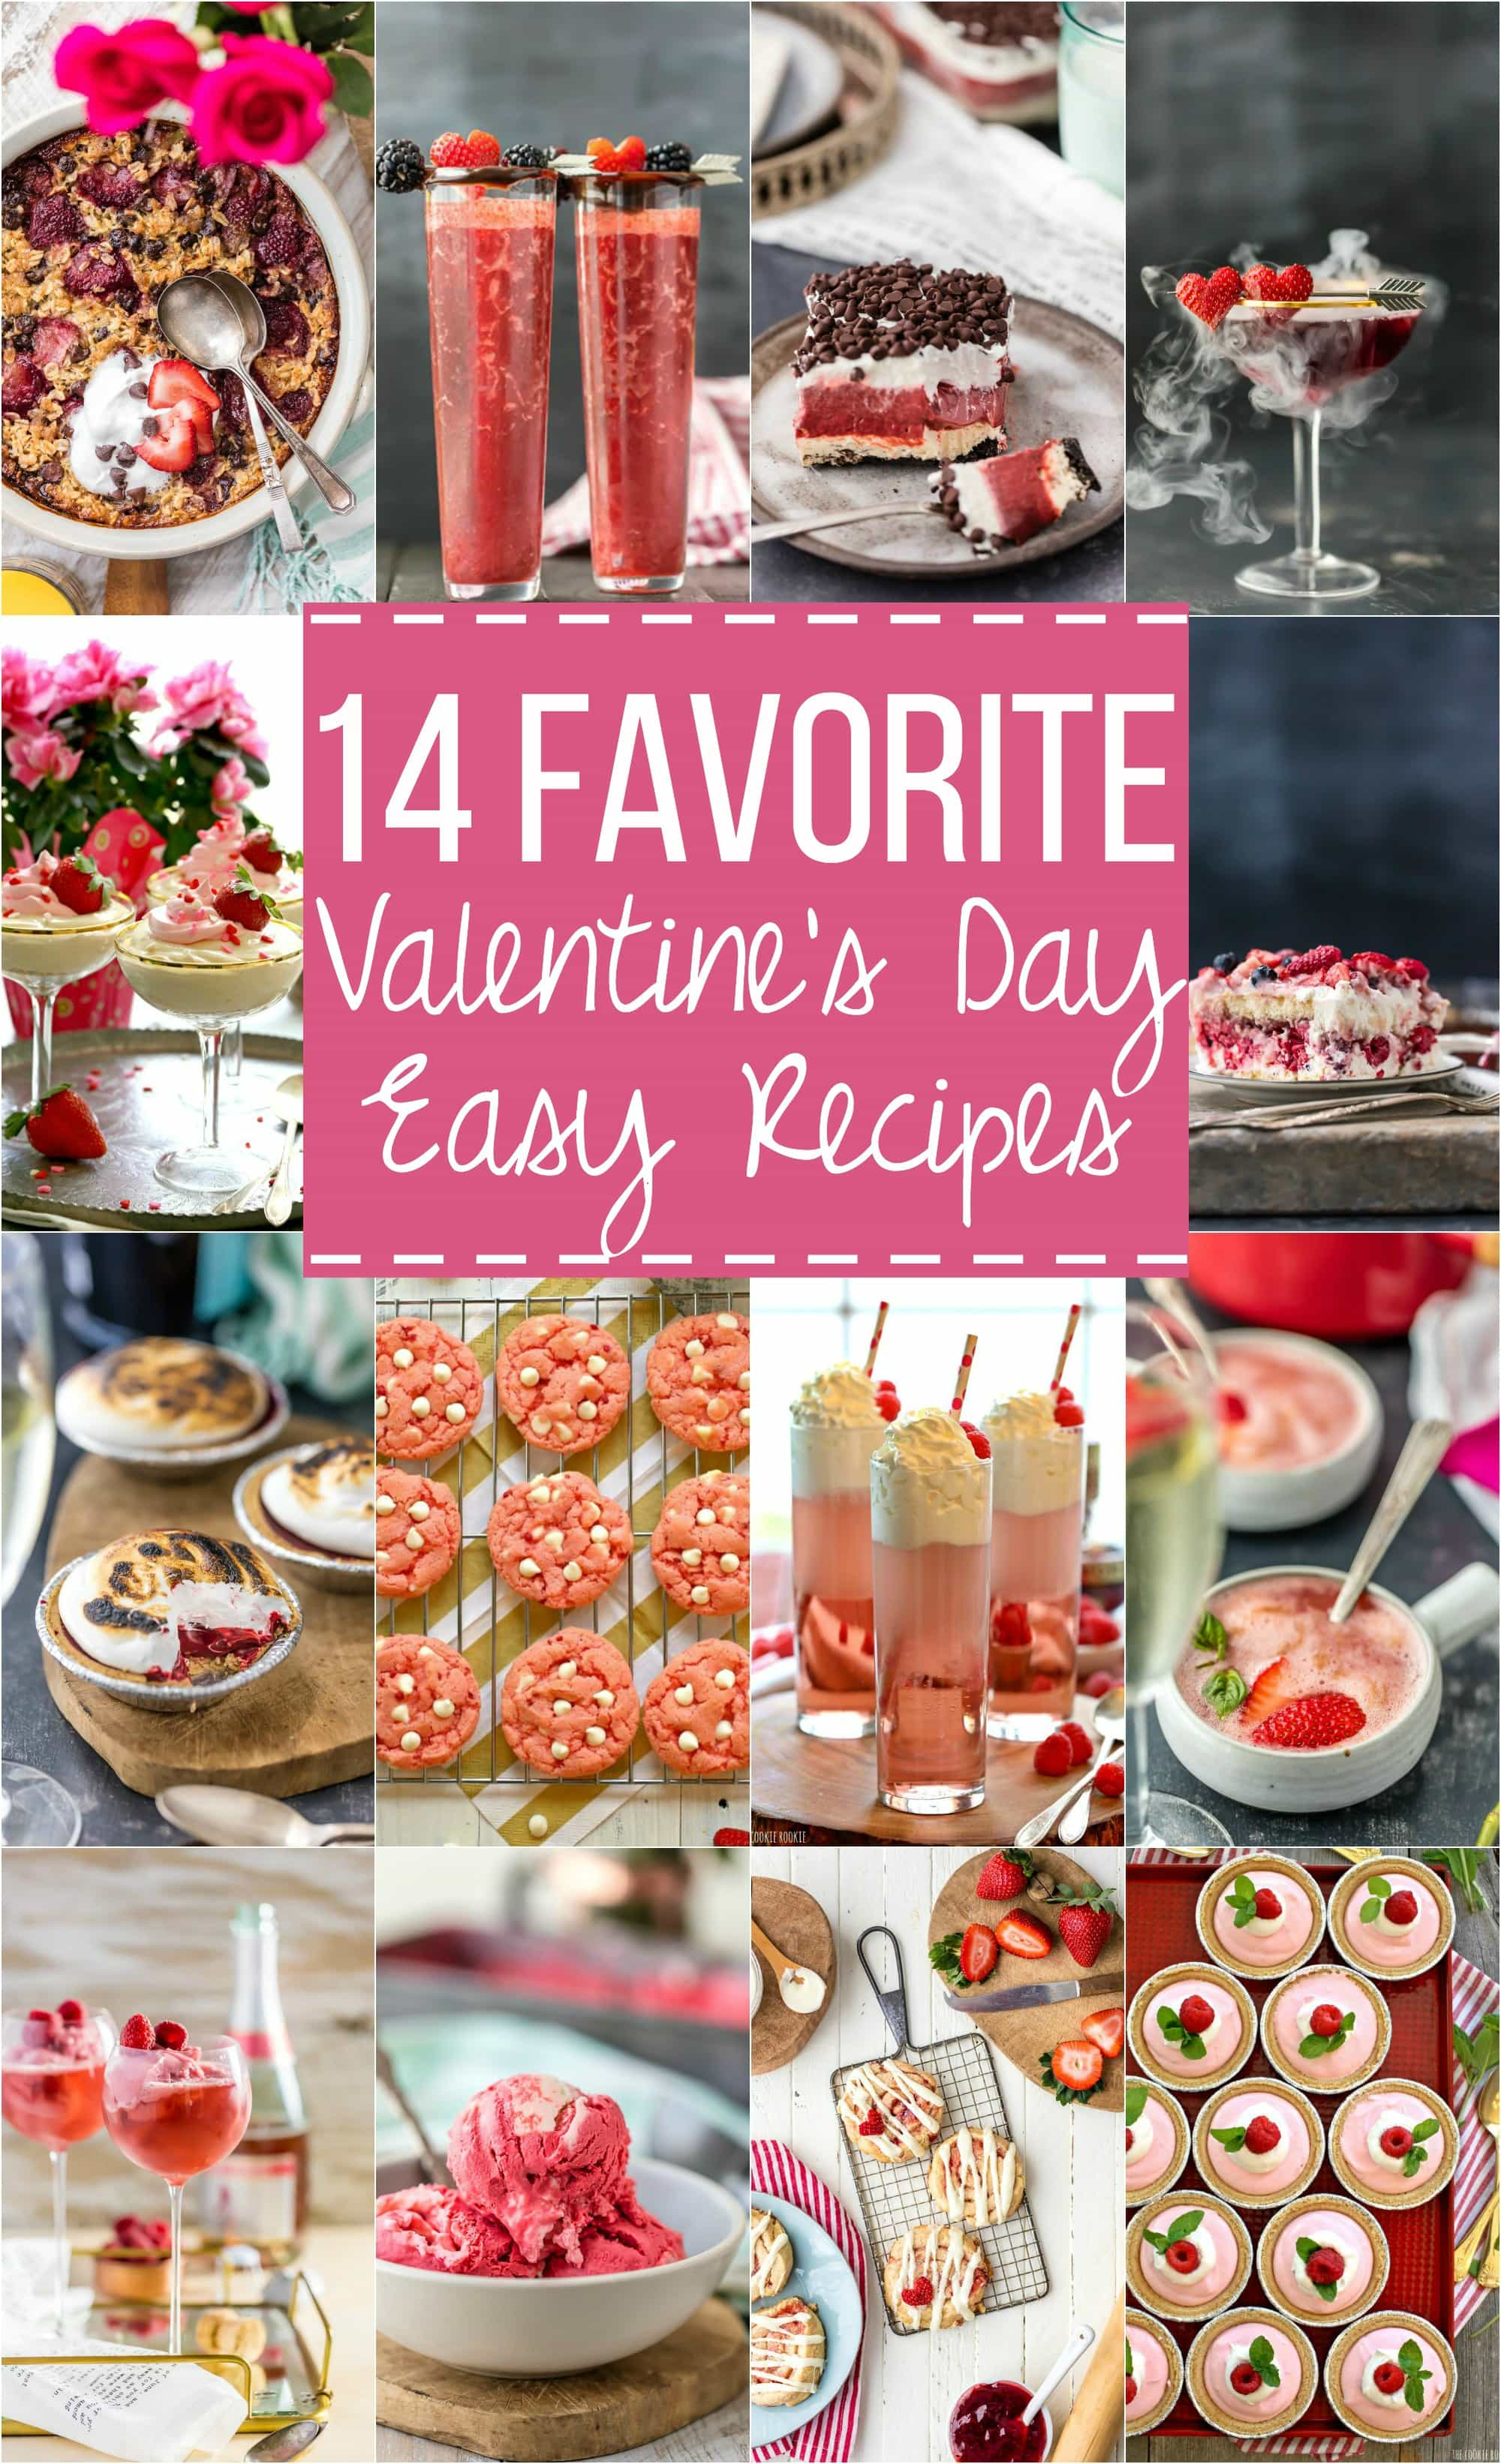 14 Favorite EASY Valentine's Day Recipes for everyone! Drinks, desserts, and everything in between. BEST creative Valentines recipes all in one place!